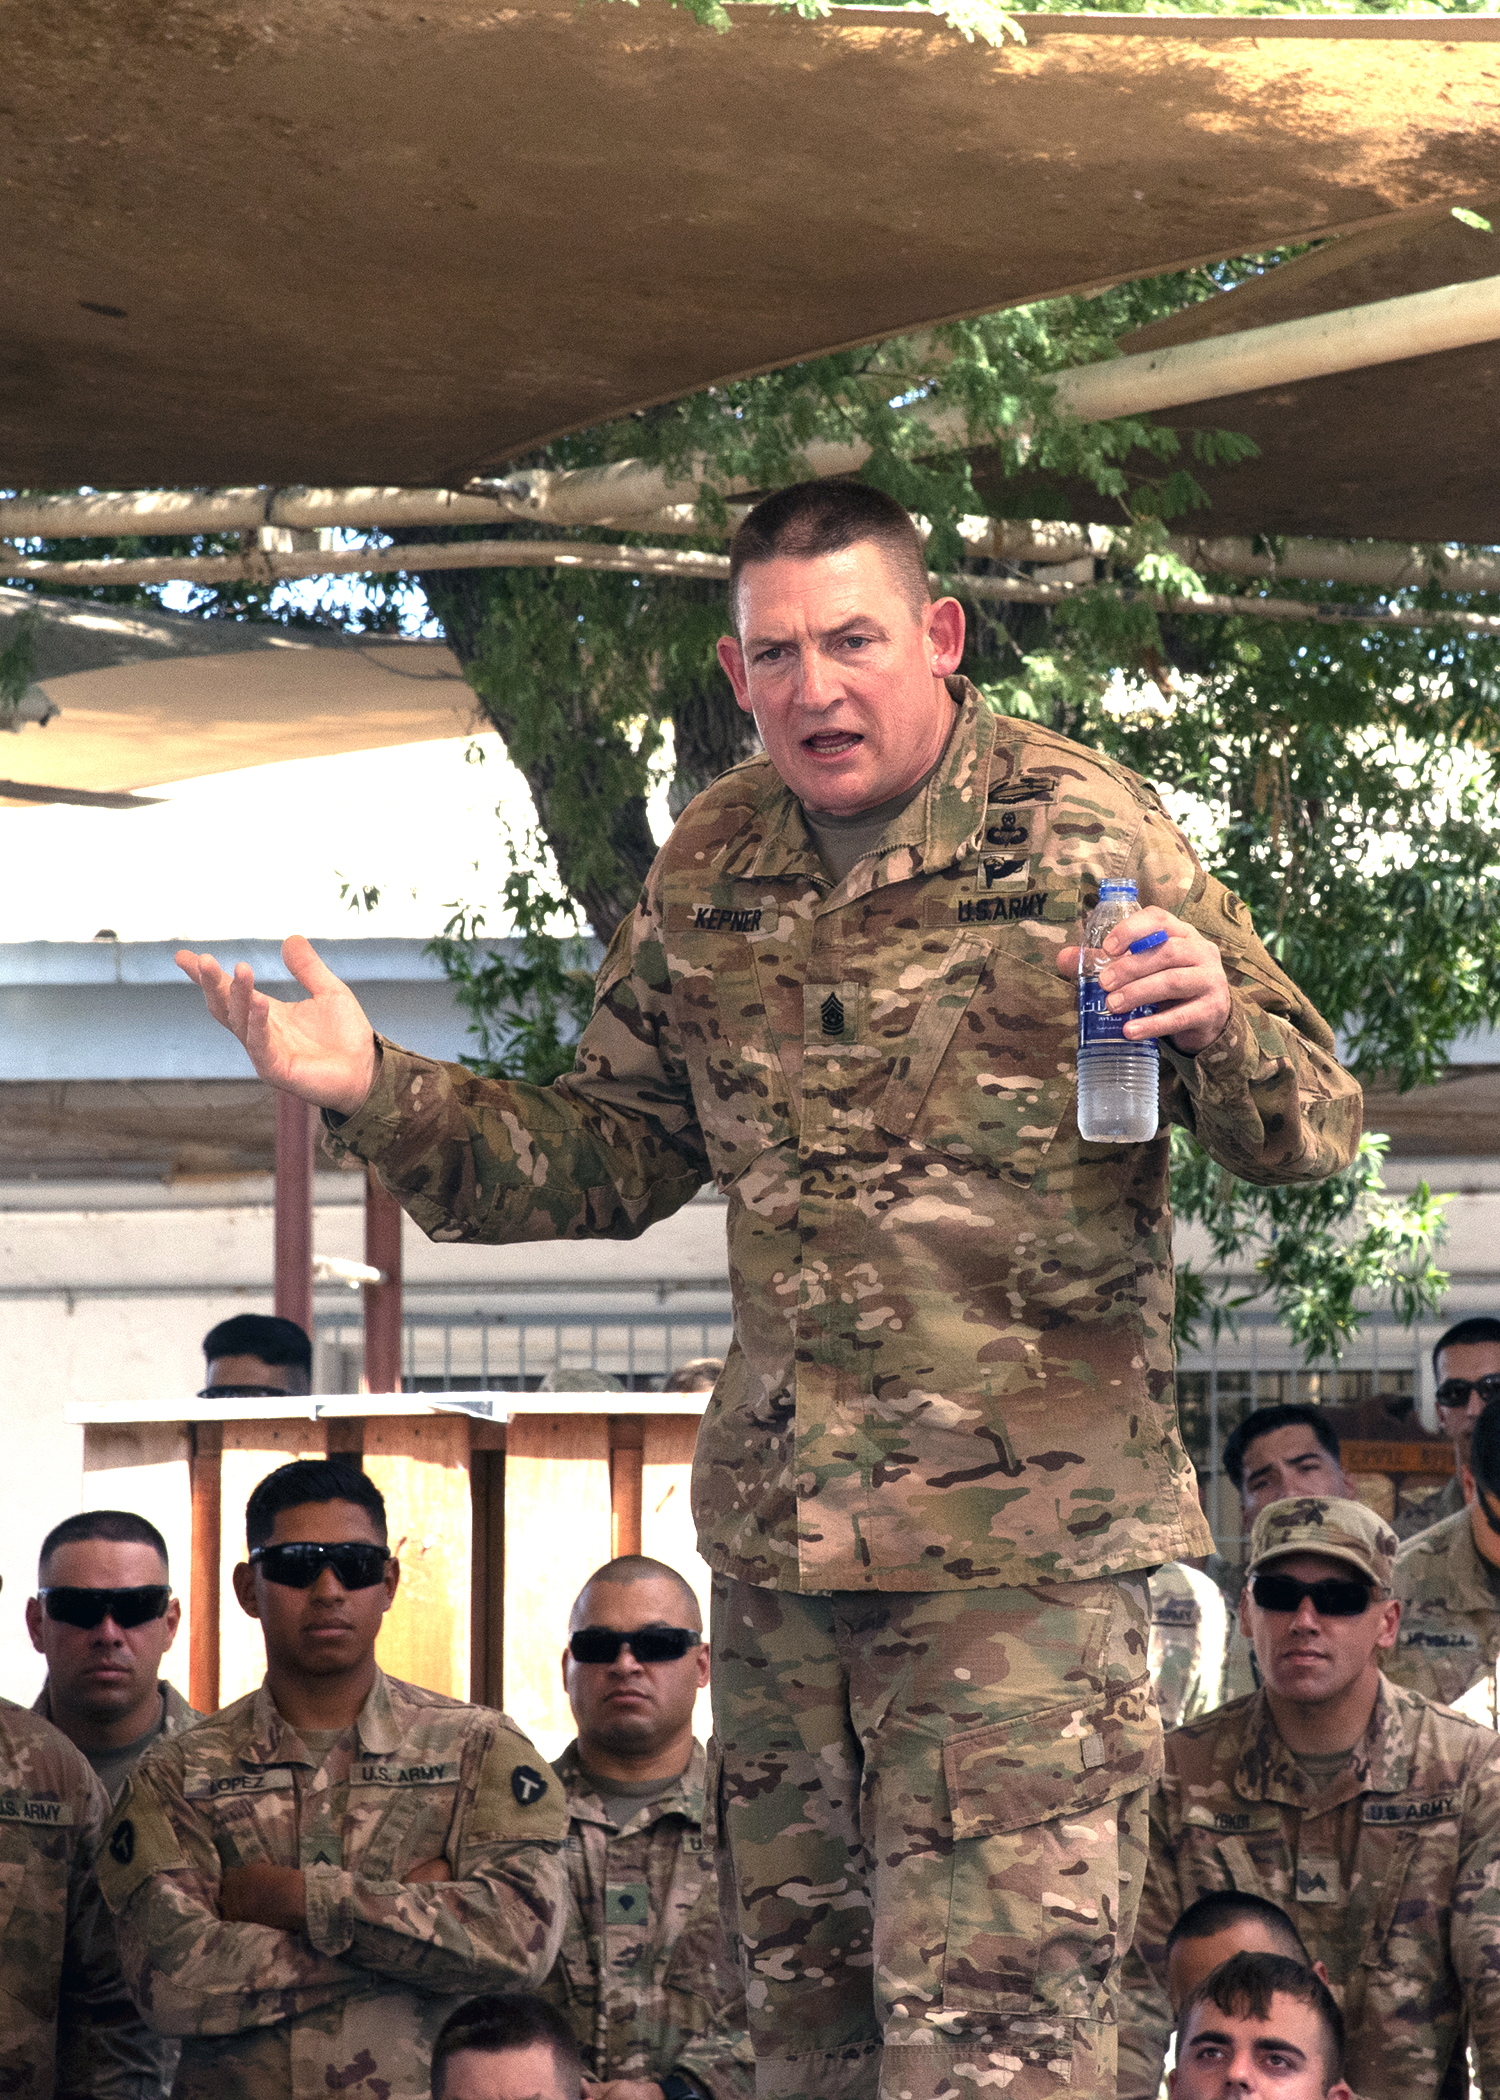 U.S. Army Command Sgt. Maj. Christopher Kepner, the command sergeant major of the National Guard Bureau, speaks to National Guardsmen deployed to Combined Joint Task Force-Horn of Africa (CJTF-HOA) from the 1-141st Infantry Regiment, Task Force Alamo, Texas National Guard, Jan. 18, 2019, at Camp Lemonnier, Djibouti. Of the nearly 2,000 service members assigned to CJTF-HOA, 43 percent of them are National Guard members. (U.S. Air Force photo by Master Sgt. Amanda Currier)